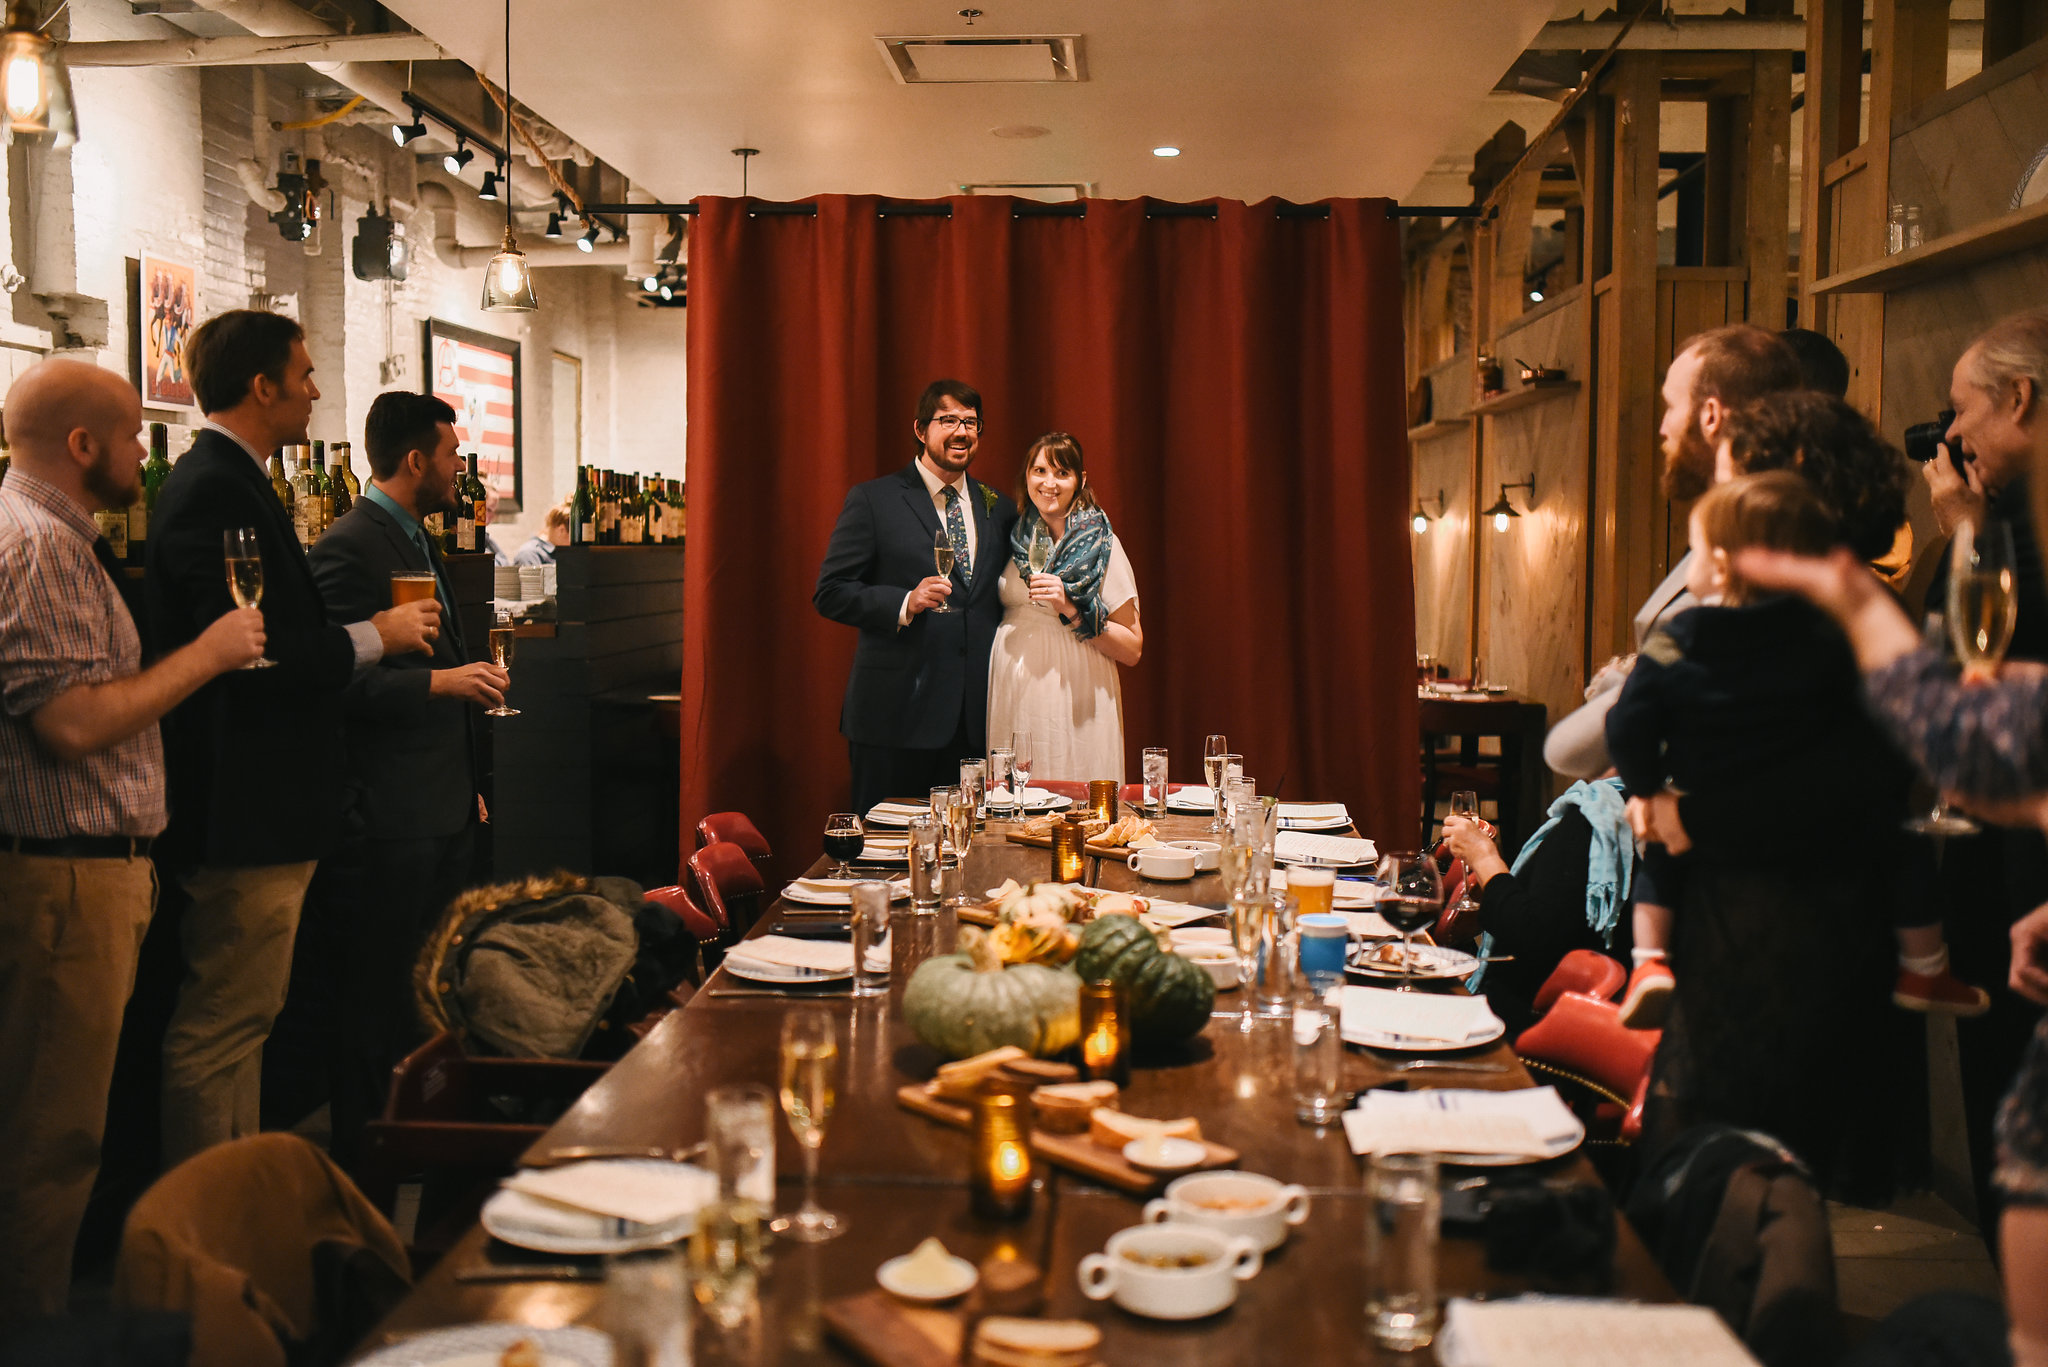 Woodberry, Baltimore, La Cuchara, Intimate Wedding, Nature, Maryland Wedding Photographer, Romantic, Classic, Bride and Groom Giving Speech at Wedding Reception, Wedding Toast